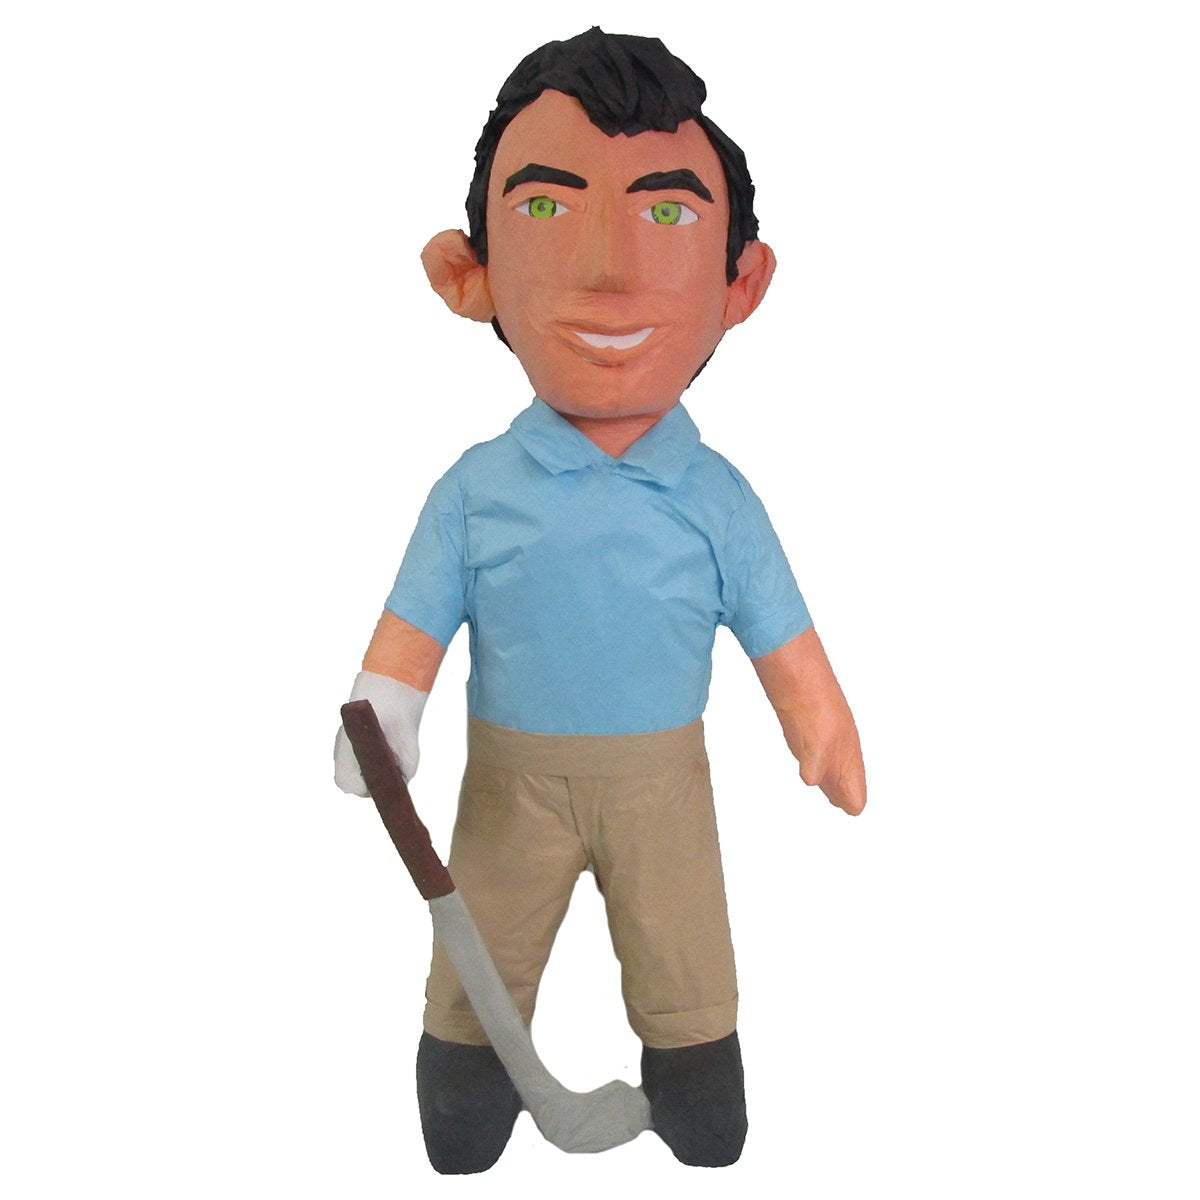 CUSTOM GOLF PLAYER PINATA